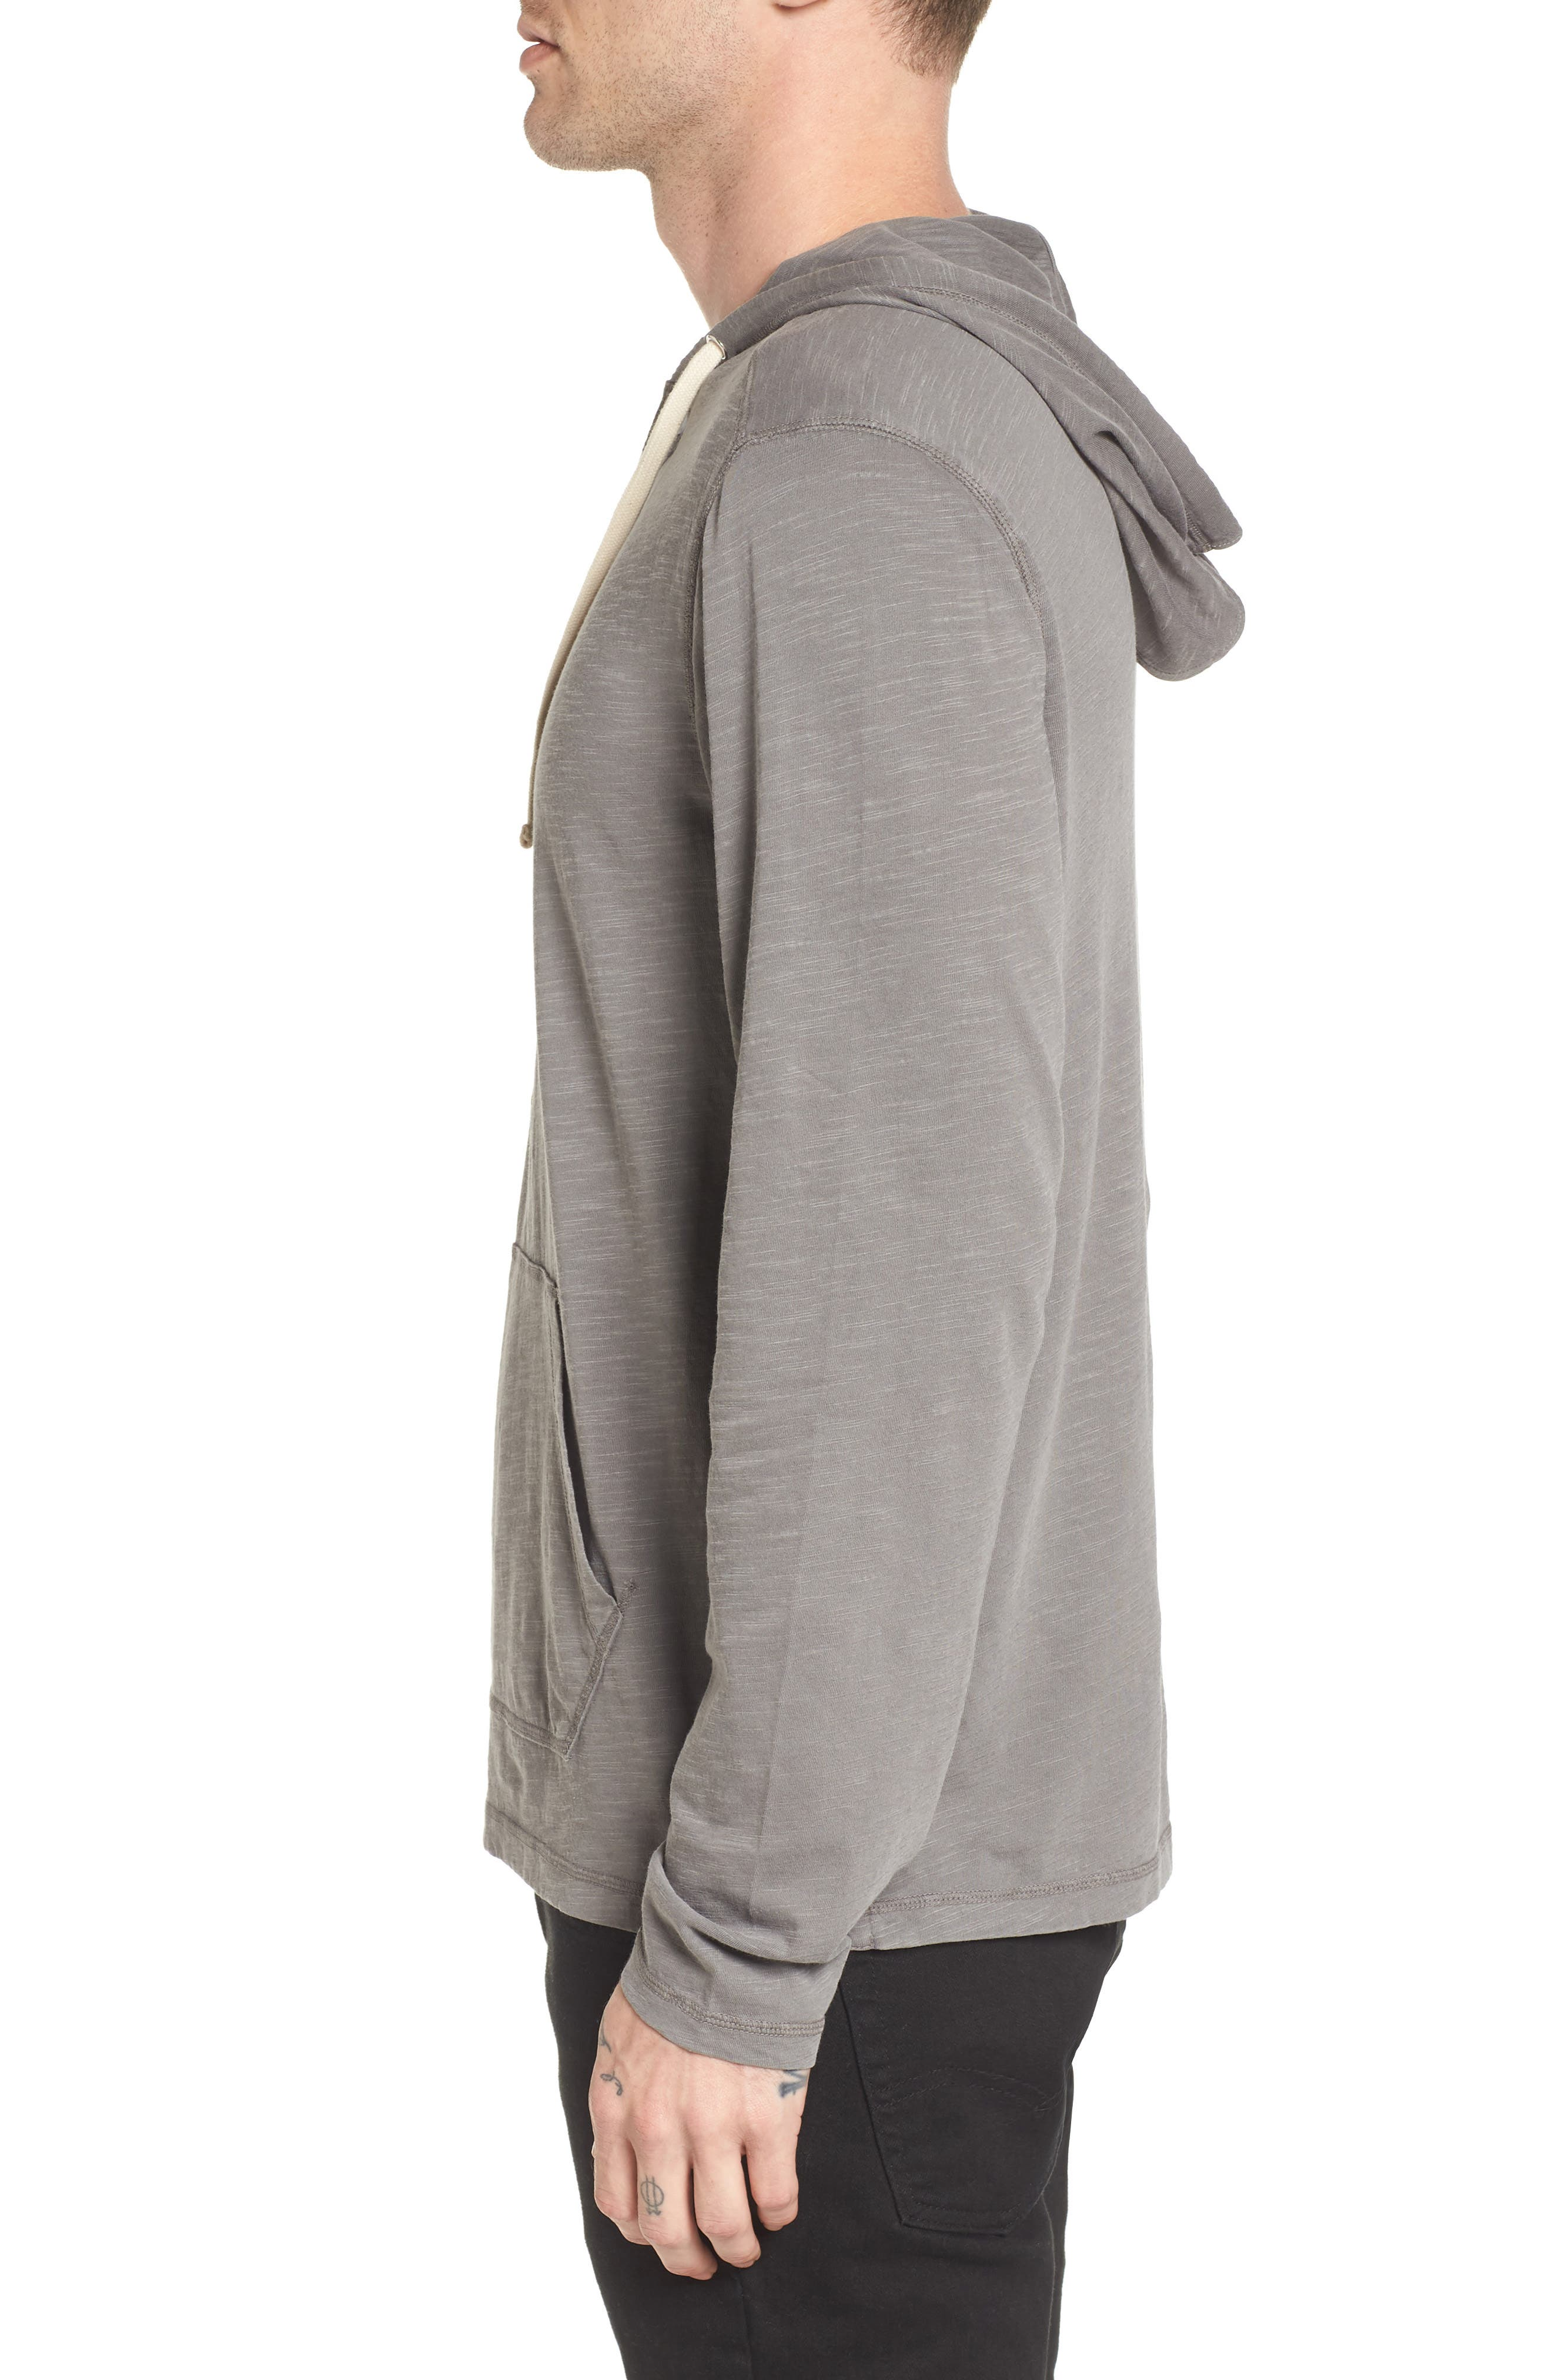 Henley Hoodie,                             Alternate thumbnail 4, color,                             Grey Charcoal